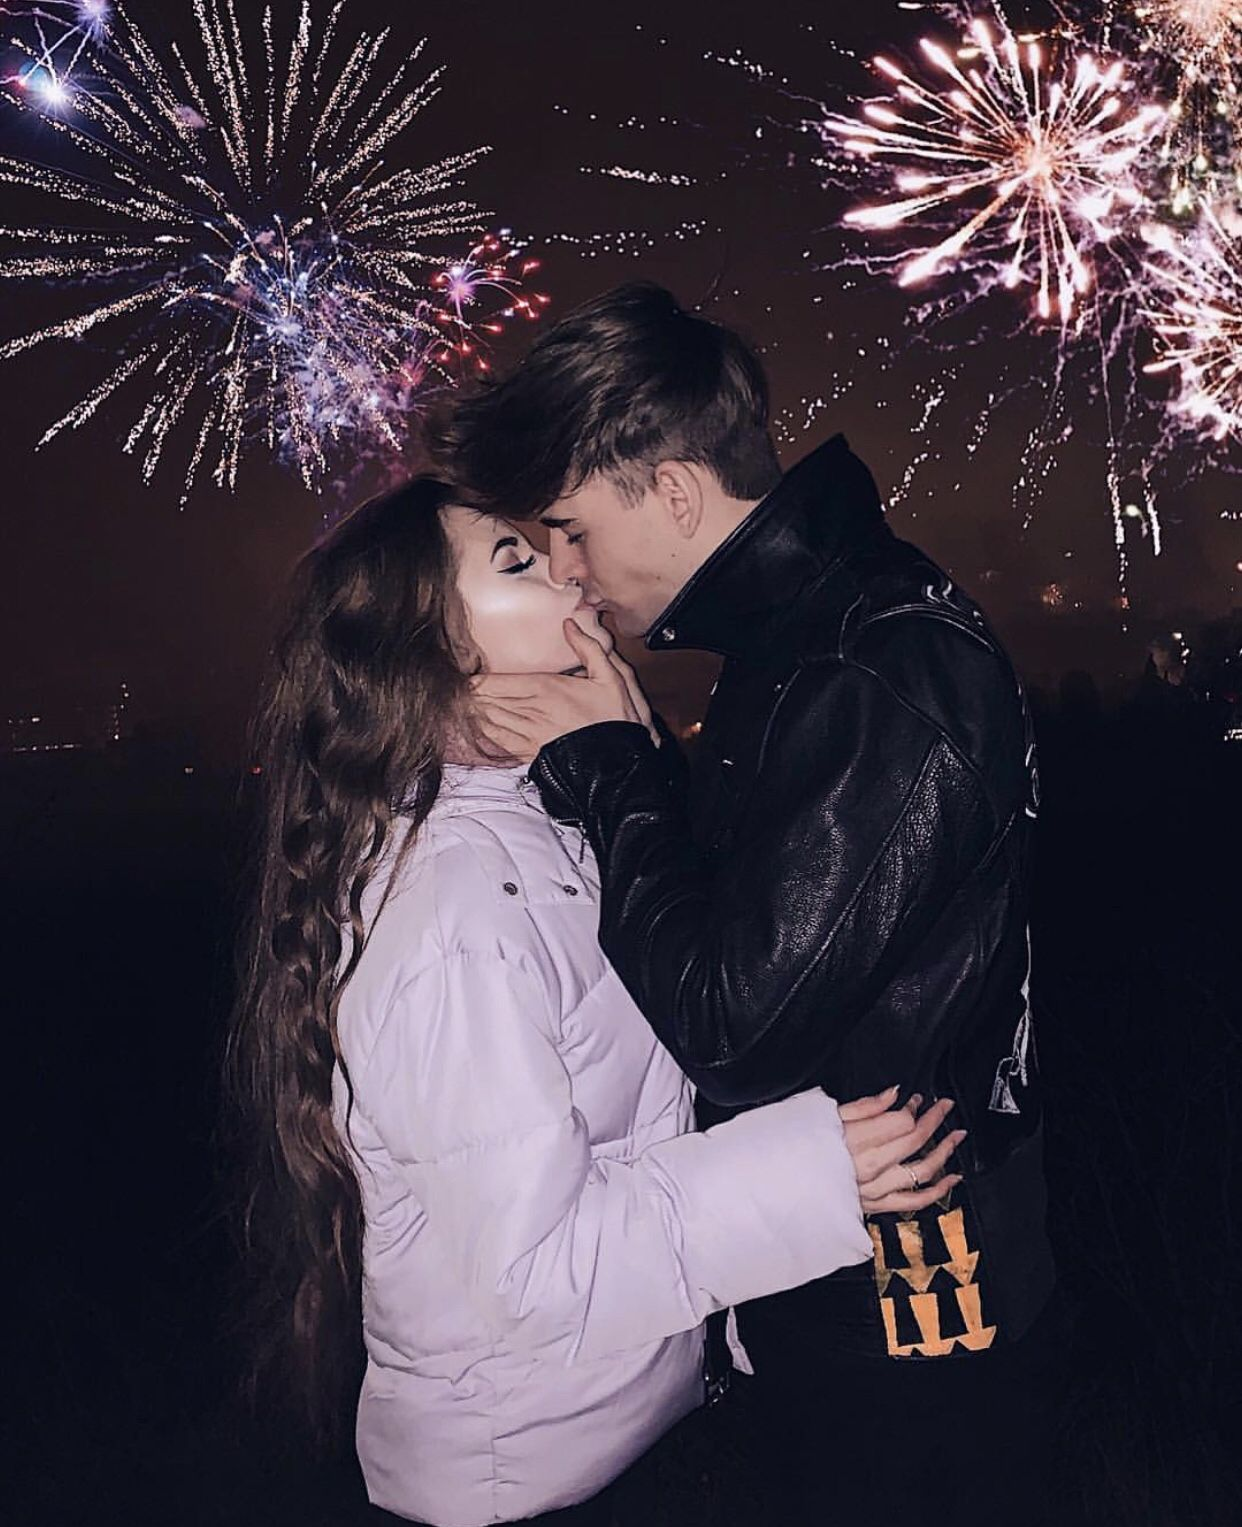 Pin By Josefina On Couple Goals New Year S Kiss Cute Couple Pictures Cute Couples Photos